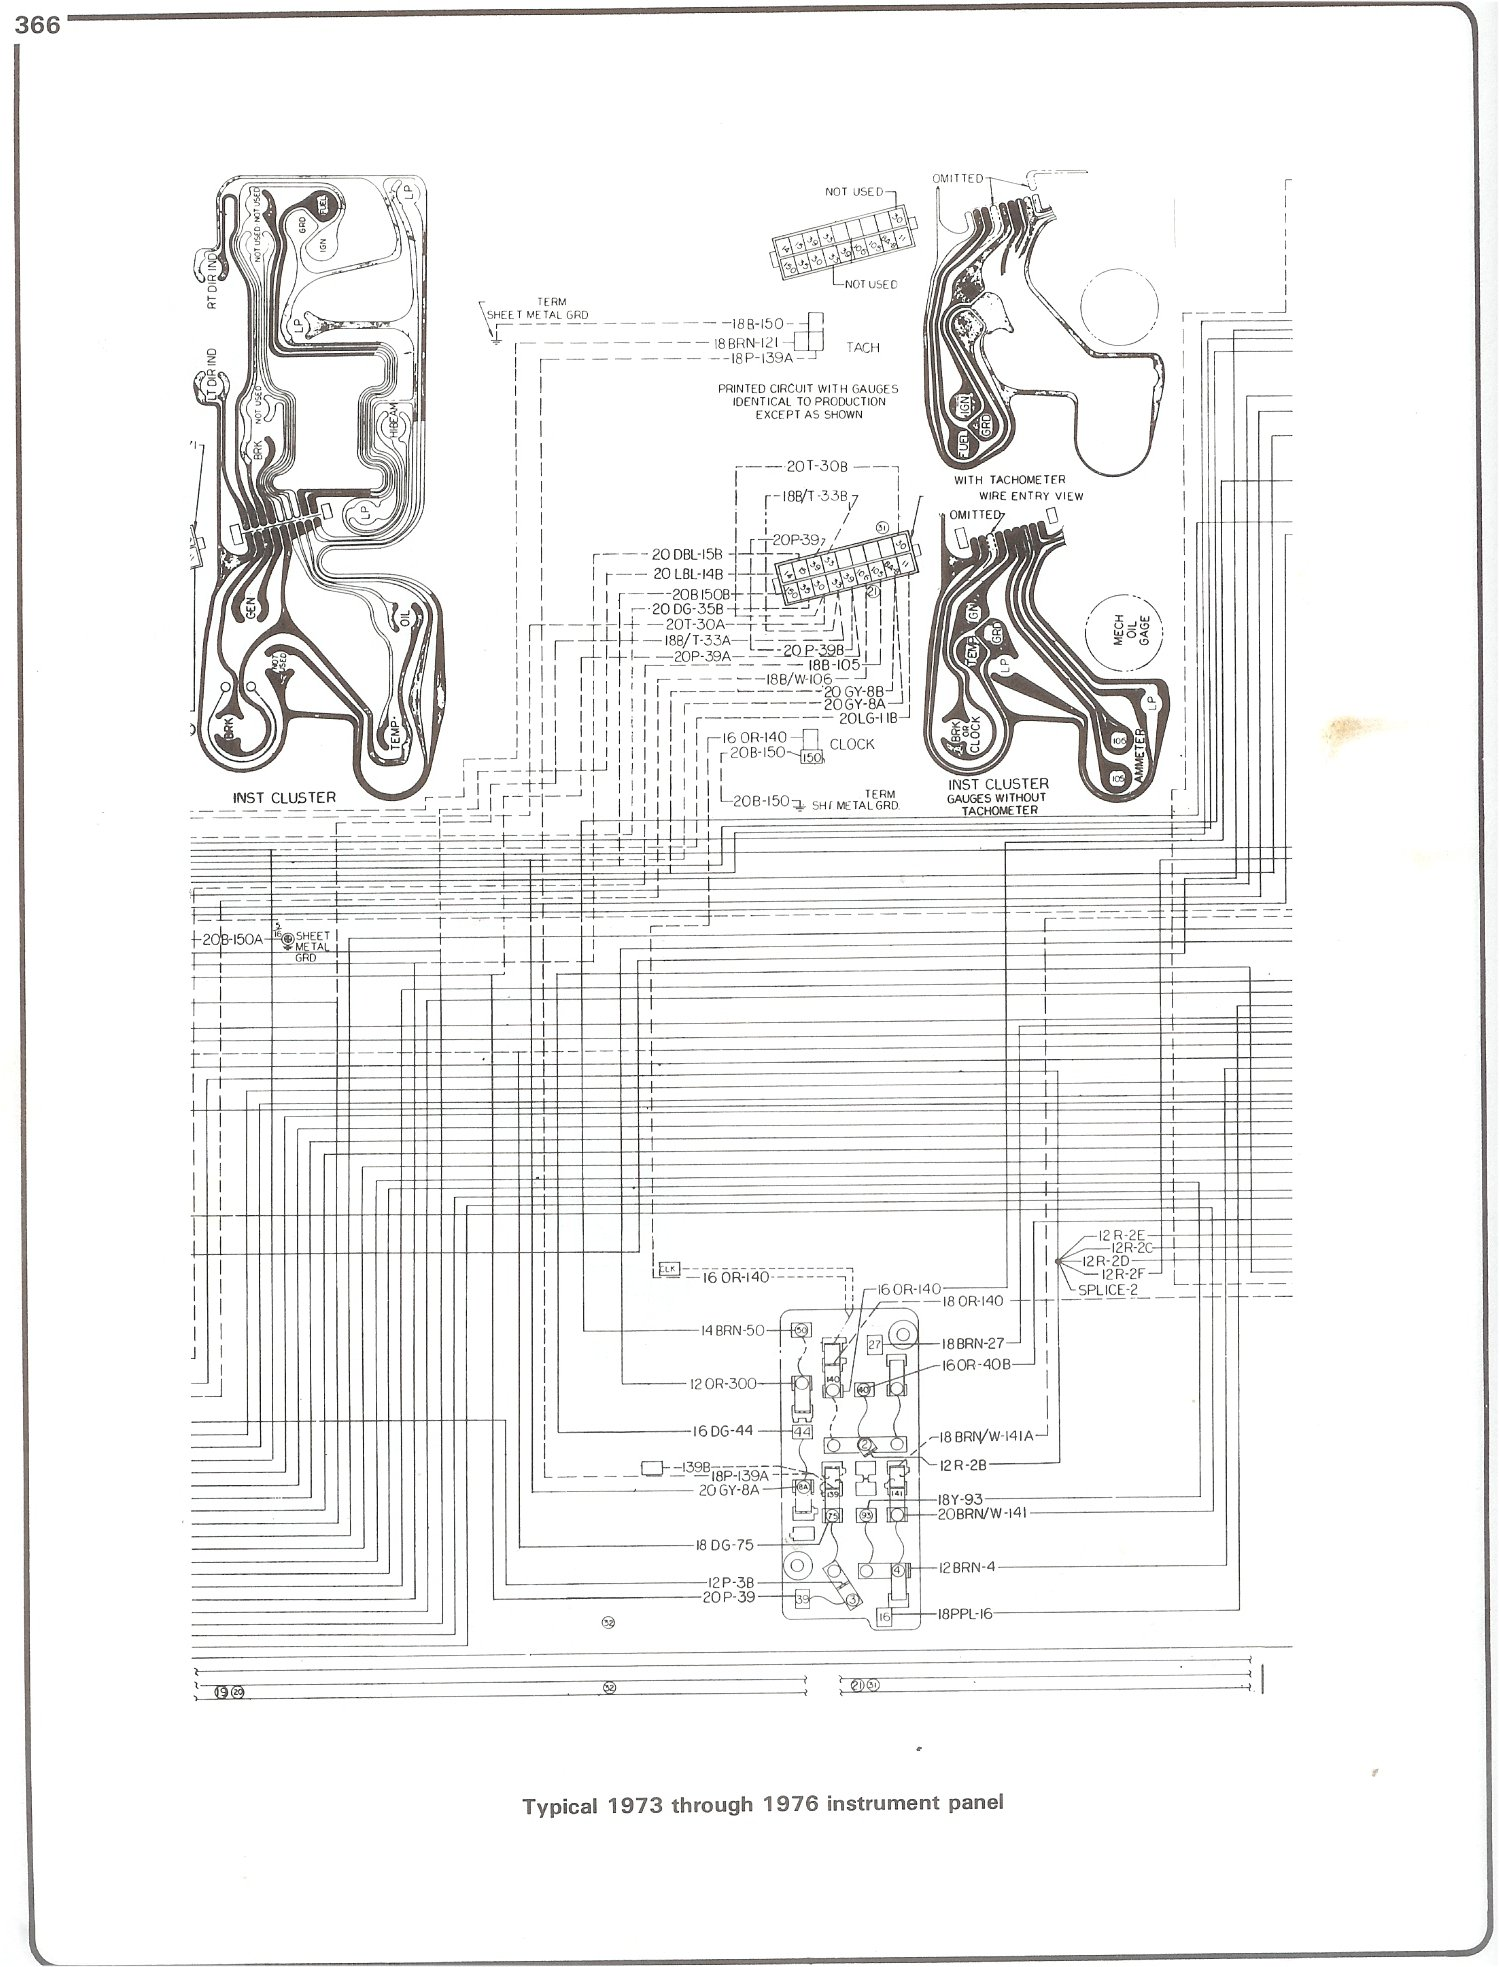 complete 73 87 wiring diagrams rh forum 73 87chevytrucks com 1994 Chevy Fuse Box Diagram 1987 Chevy Fuse Box Diagram